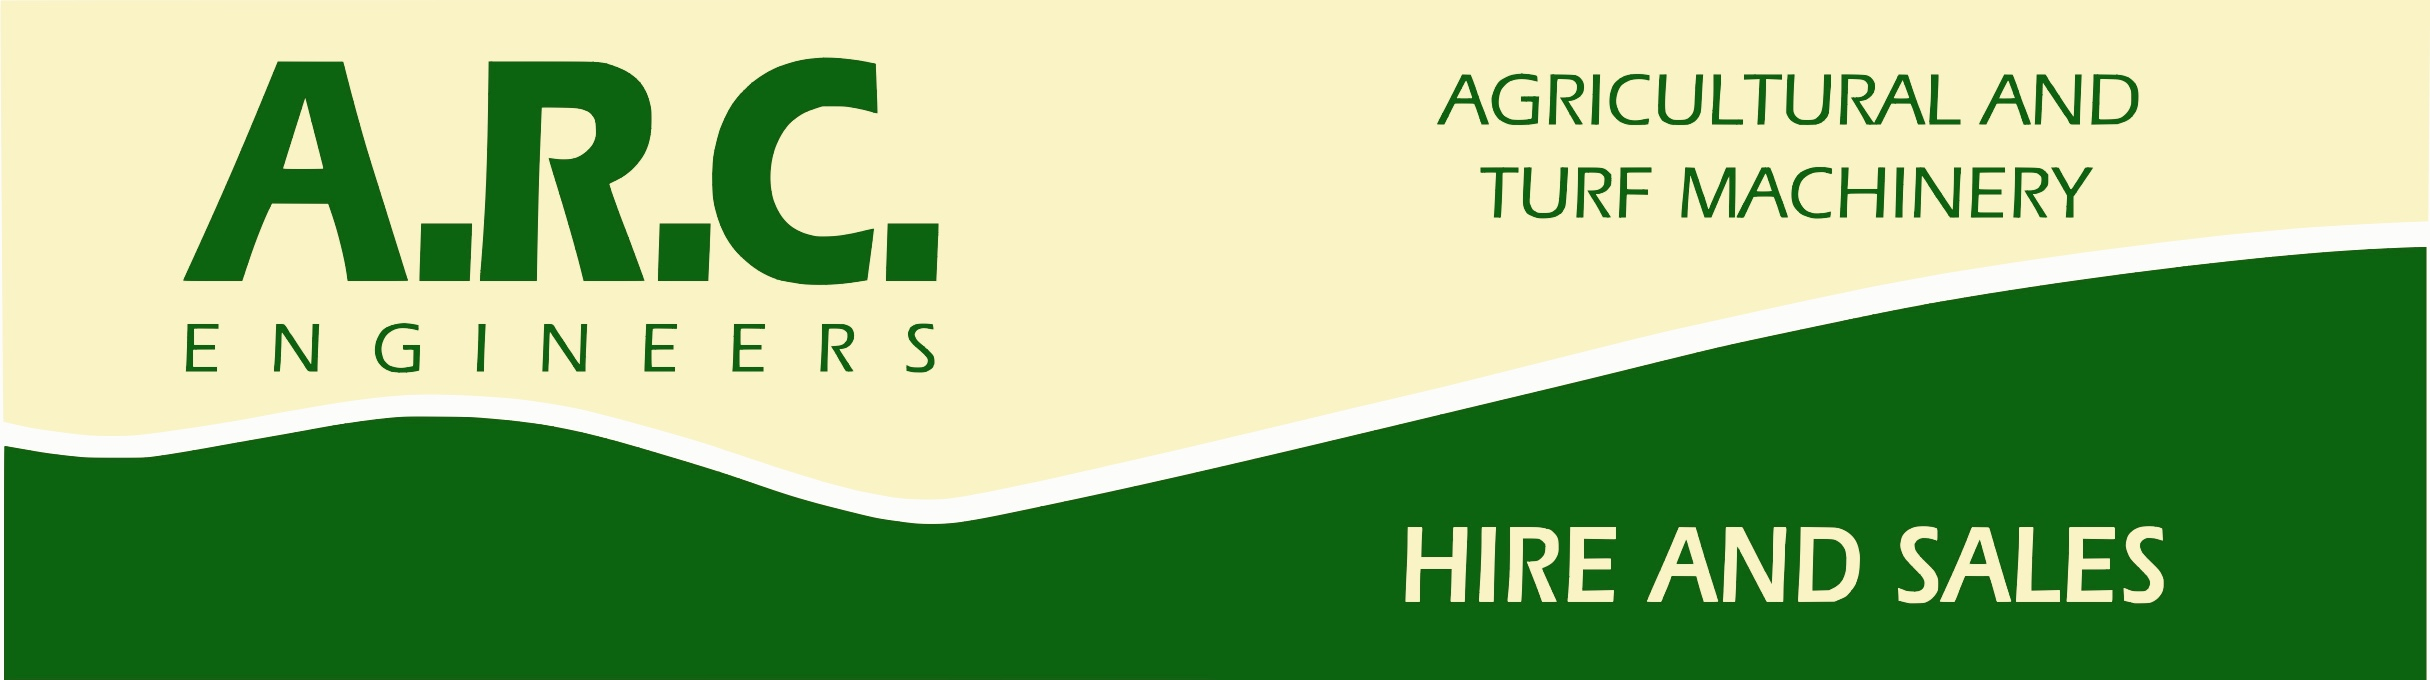 ARC Agricultural Engineers